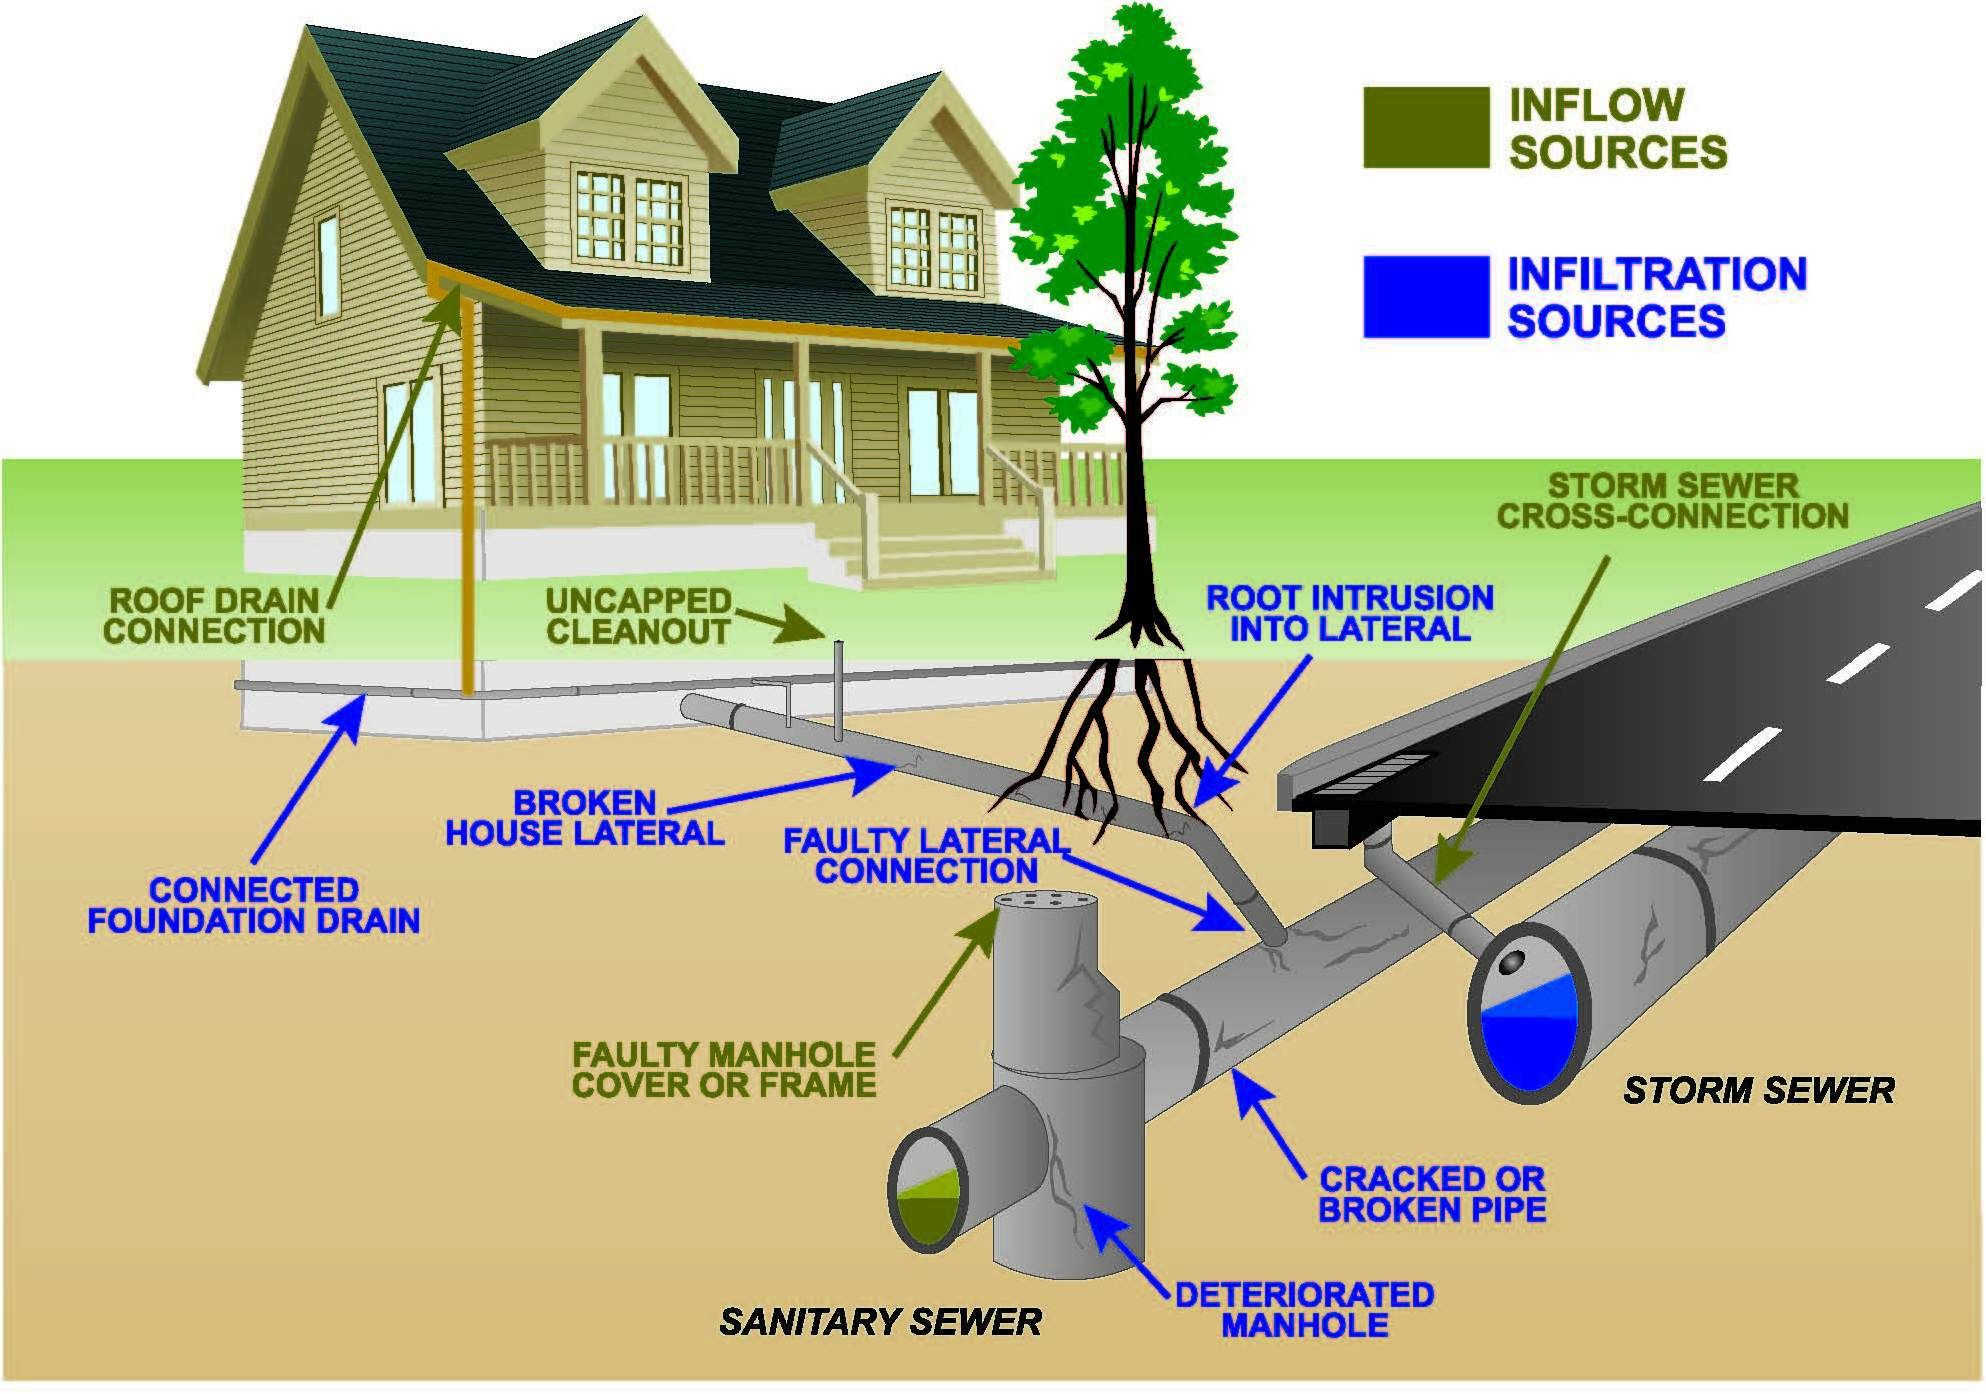 Pin by City of Bryan Texas on At Your Service | Sewer system